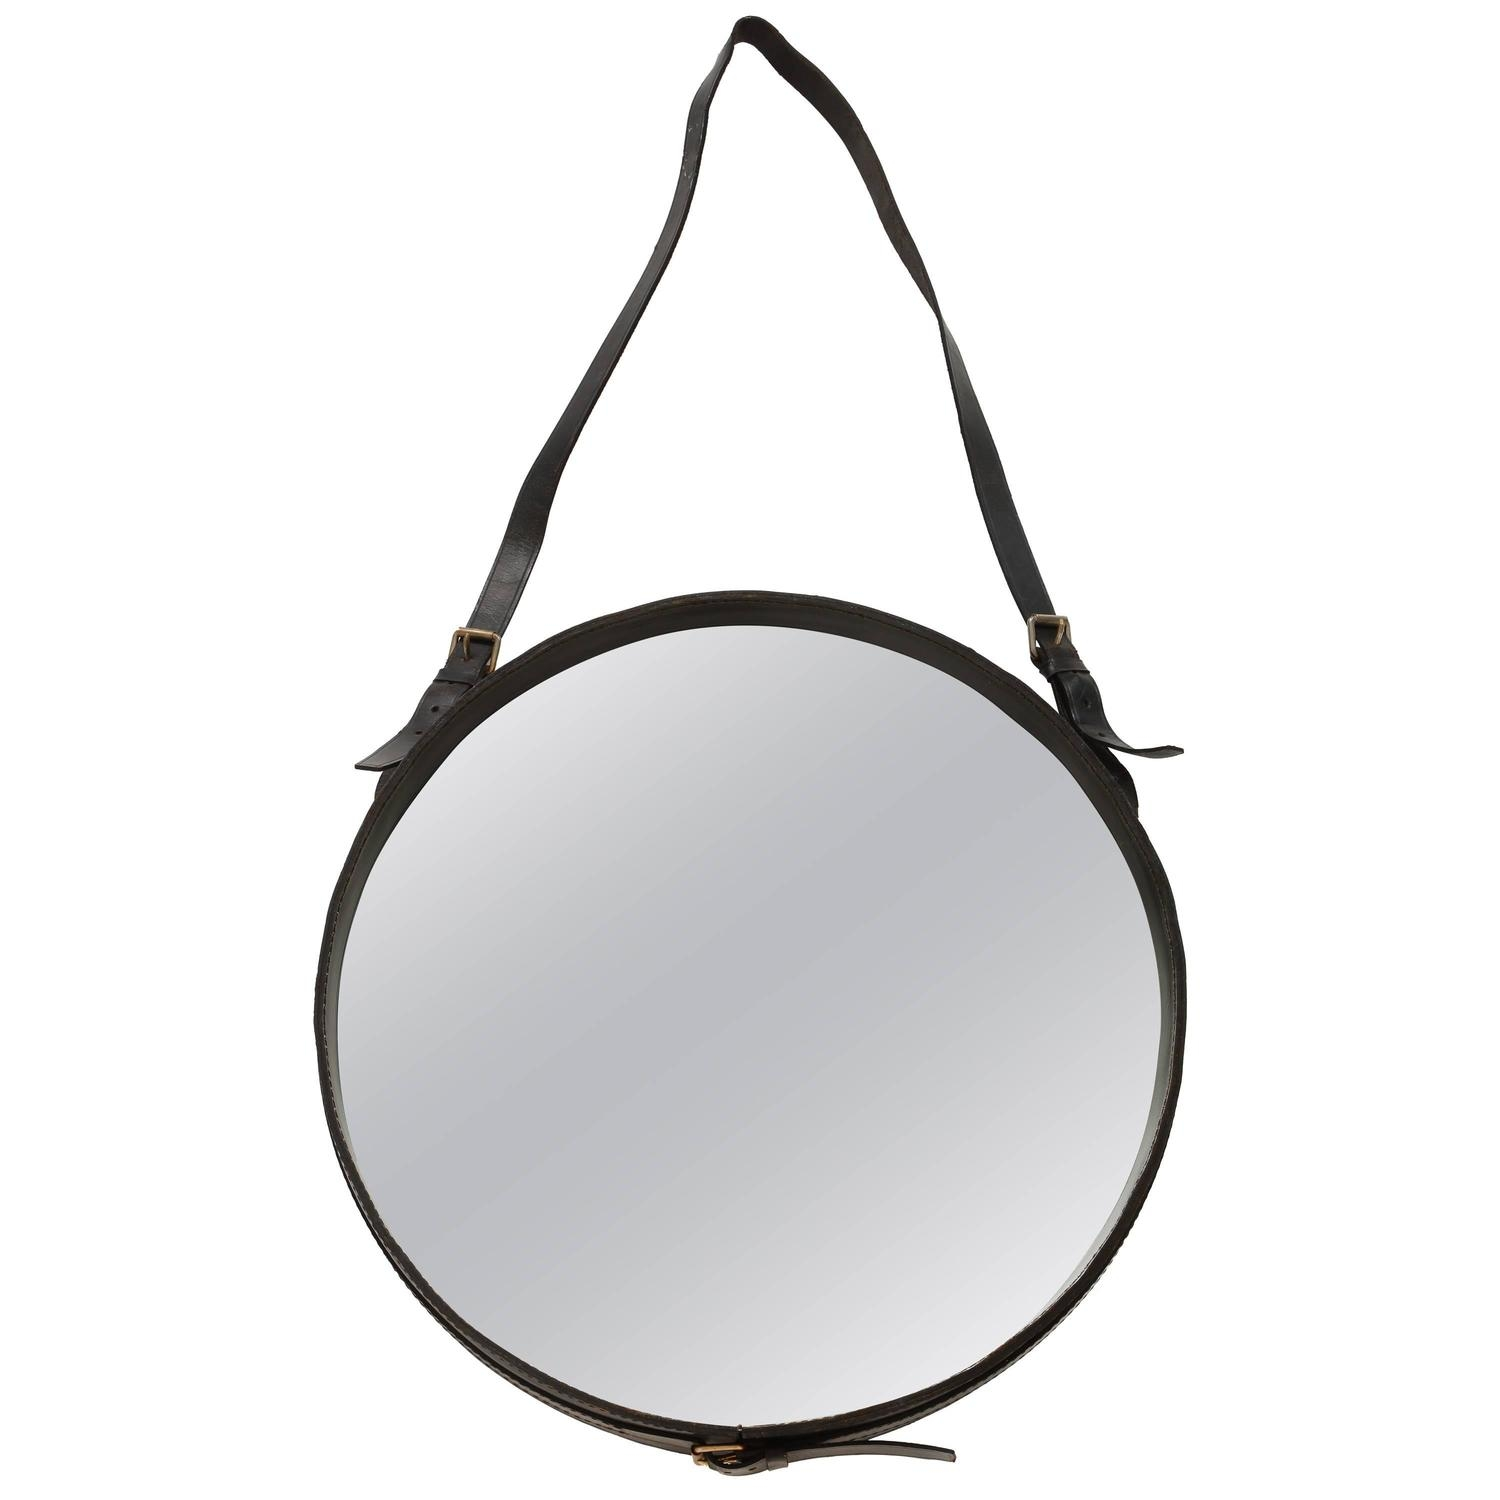 Leather Wall Mirrors 94 For Sale At 1stdibs Pertaining To Round Mirror Leather (Image 8 of 15)